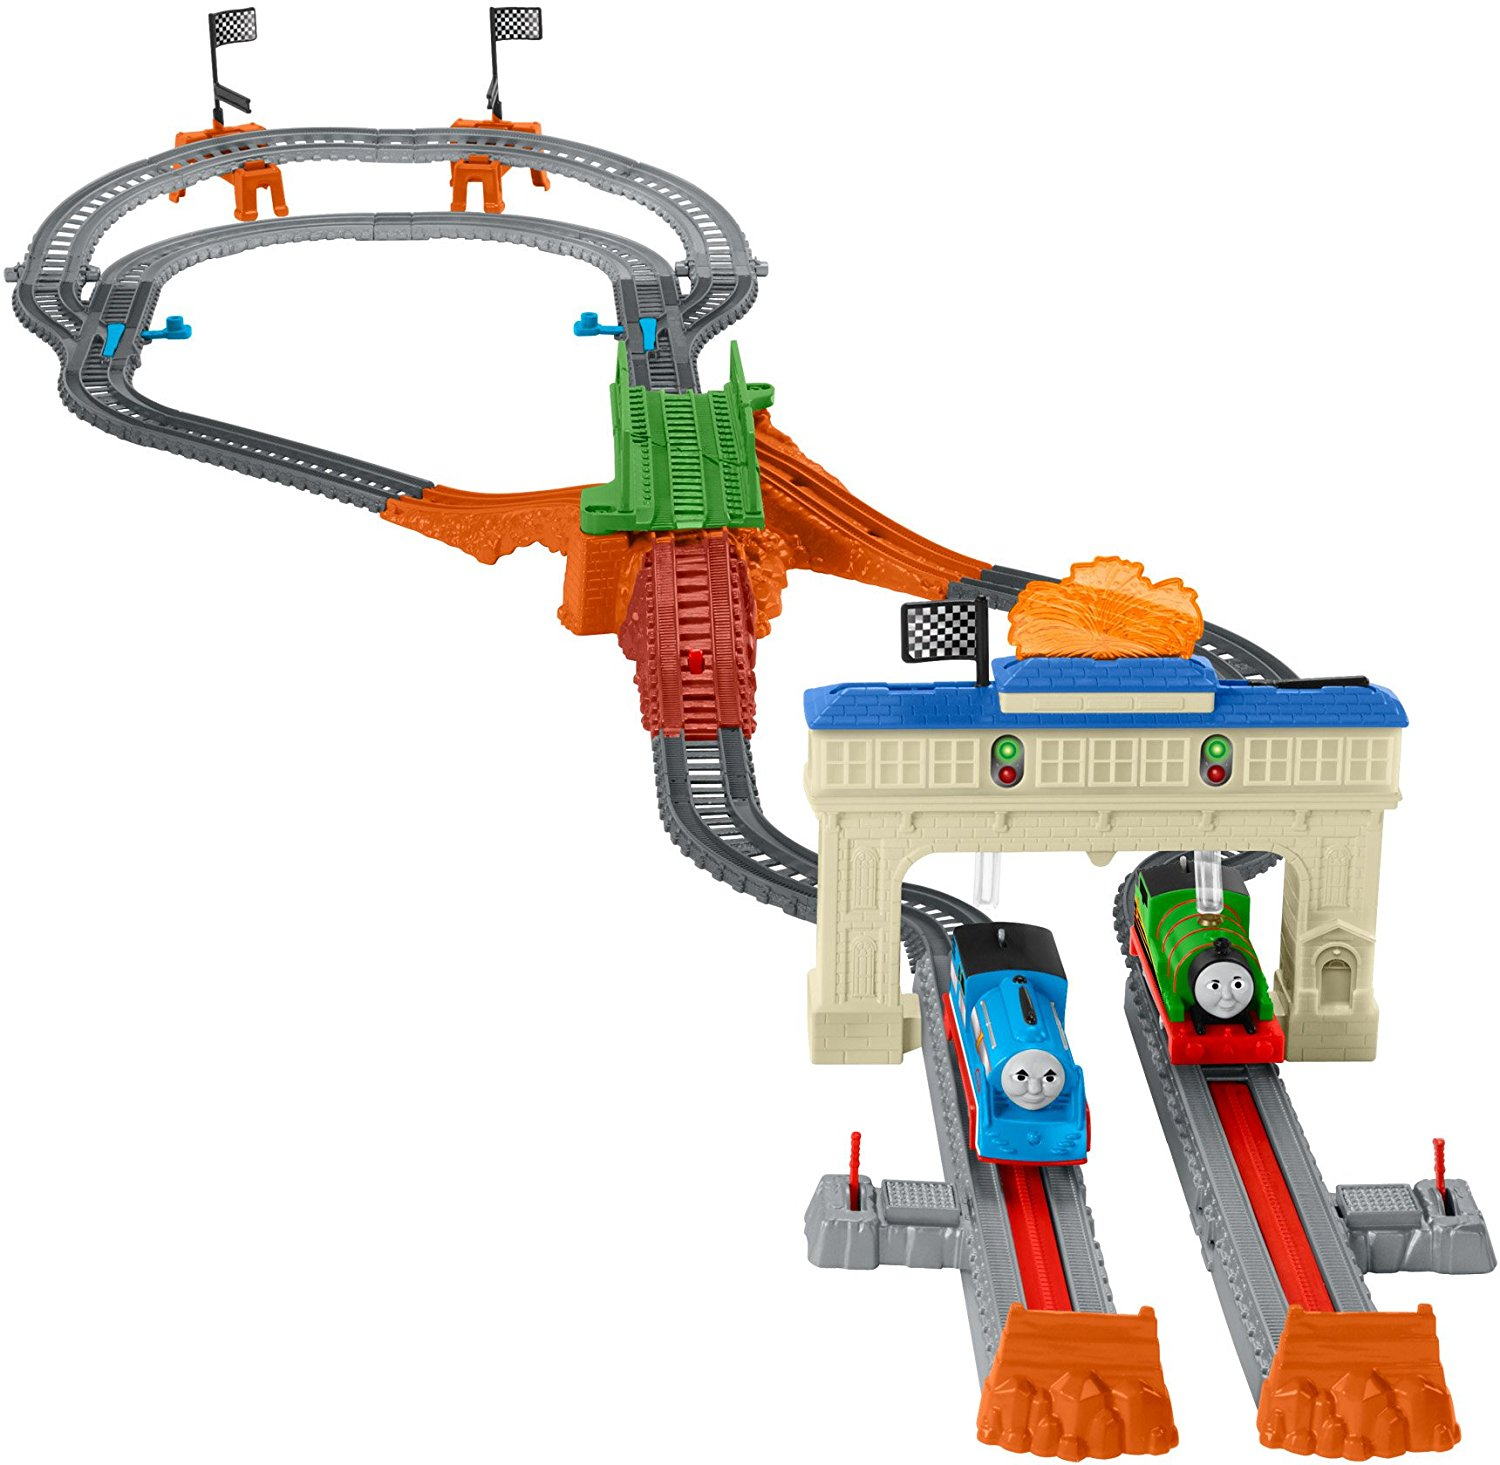 Best Toy Train Sets For Kids